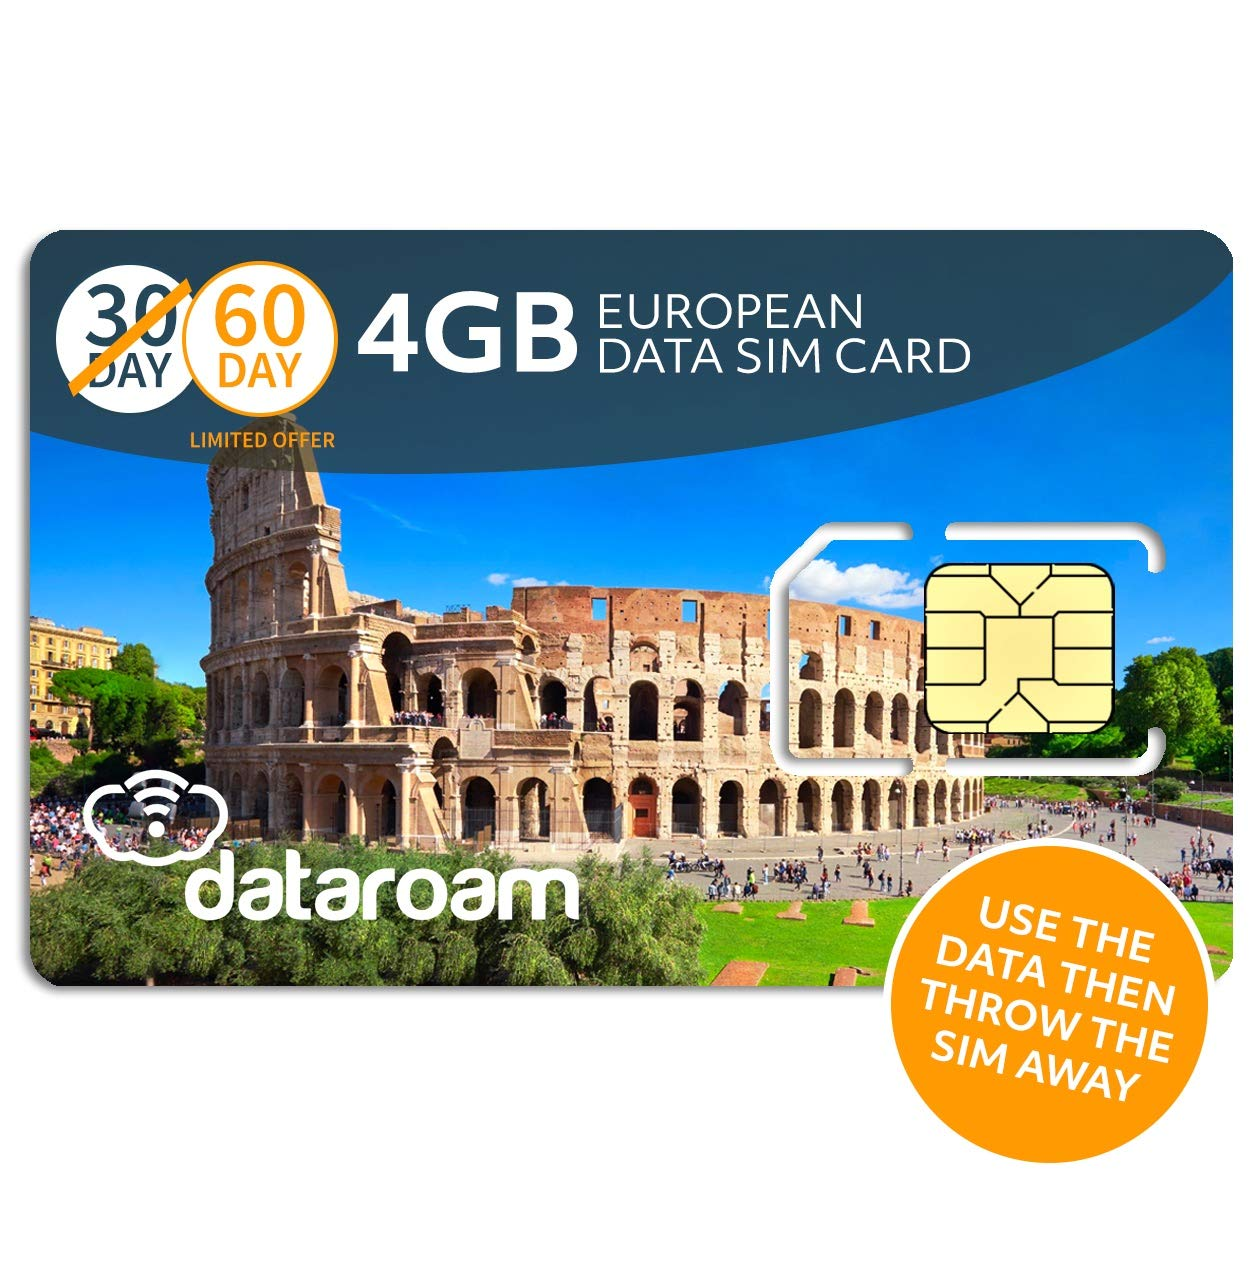 dataroam Prepaid 4G Europe Data SIM Card - Europe 4GB Bundle - 36 Countries - 3-in-1 SIM - Cellhire by Cellhire